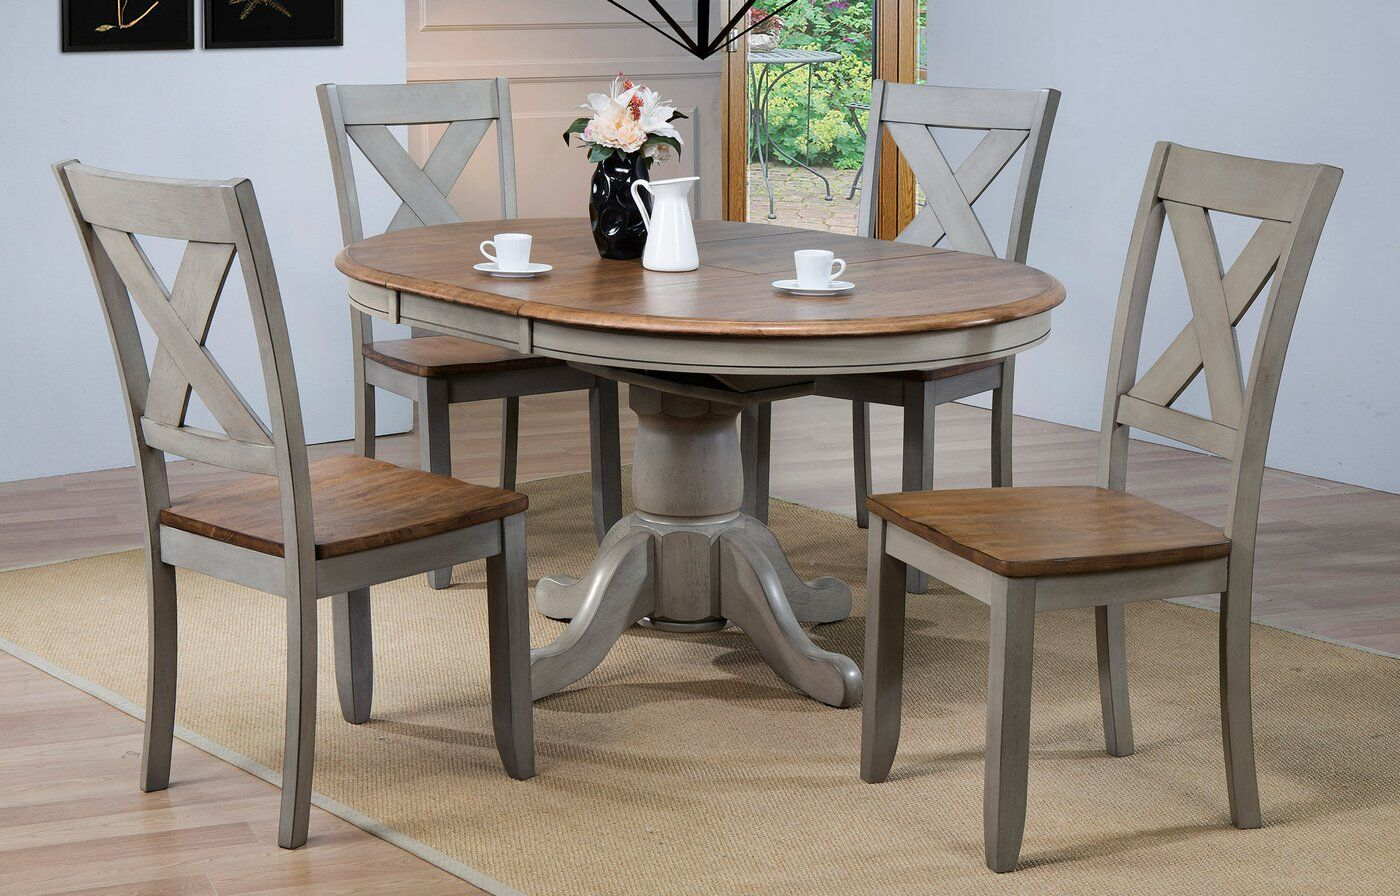 Wonderly 5 Piece Extendable Dining Set Round Extendable Dining Table Dining Table Makeover Solid Wood Dining Table